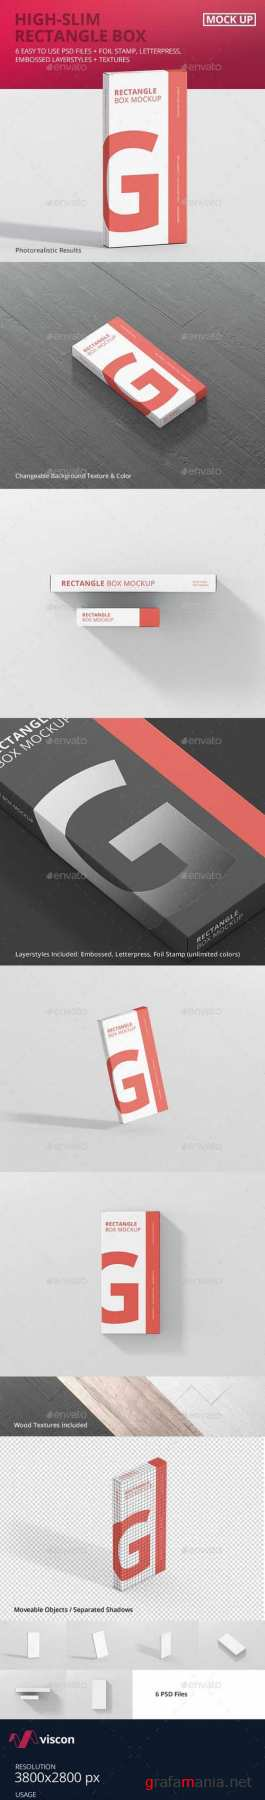 GR - Box Mockup - High Slim Rectangle 20991708